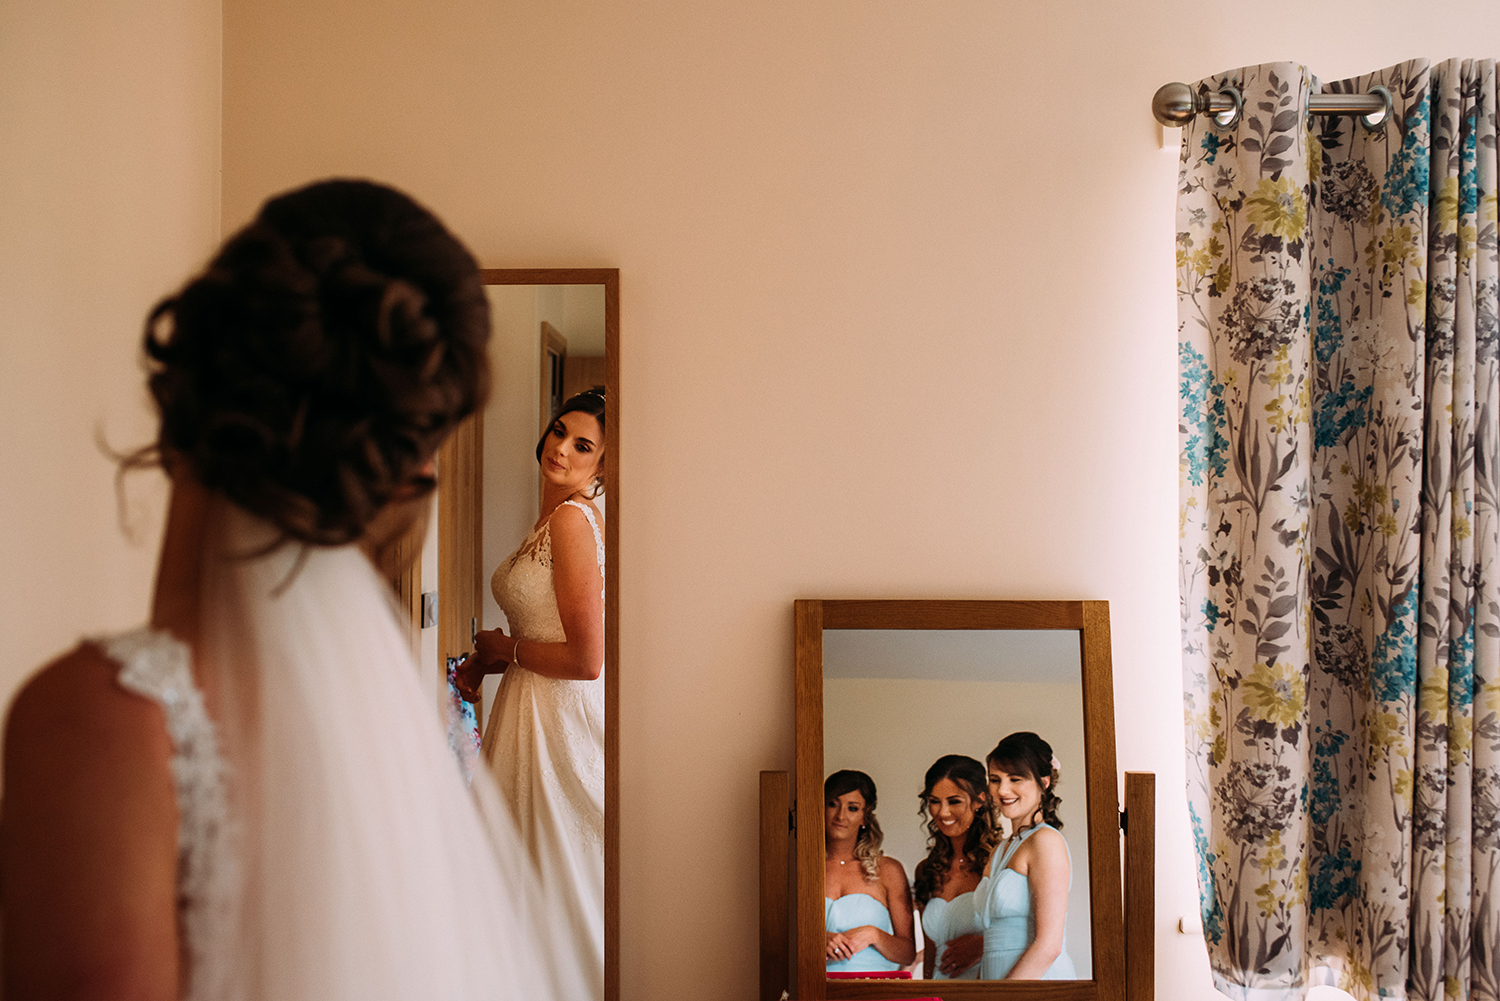 bride looks at her reflection in the mirror, the bridesmaids reflection can be seen in another mirror to the right